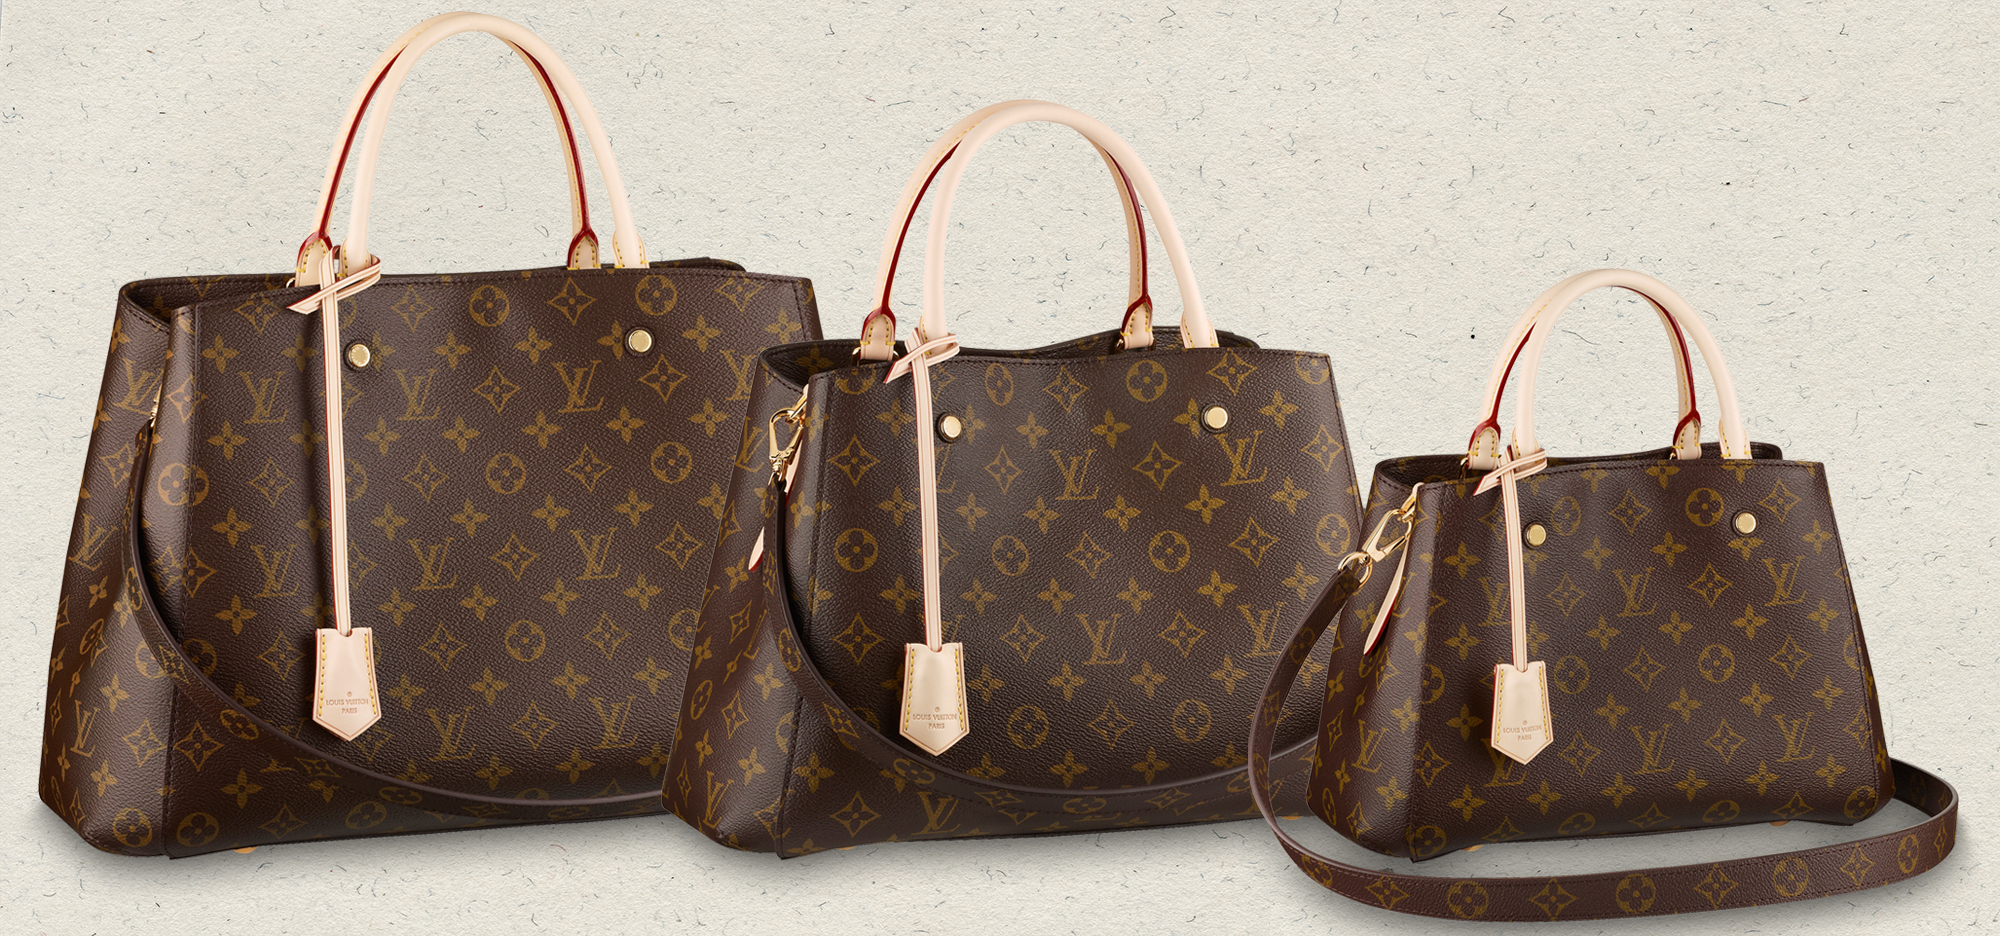 21d5e7df0755a Cheap Designer Replica Louis Vuitton Monogram Handbags Online Store